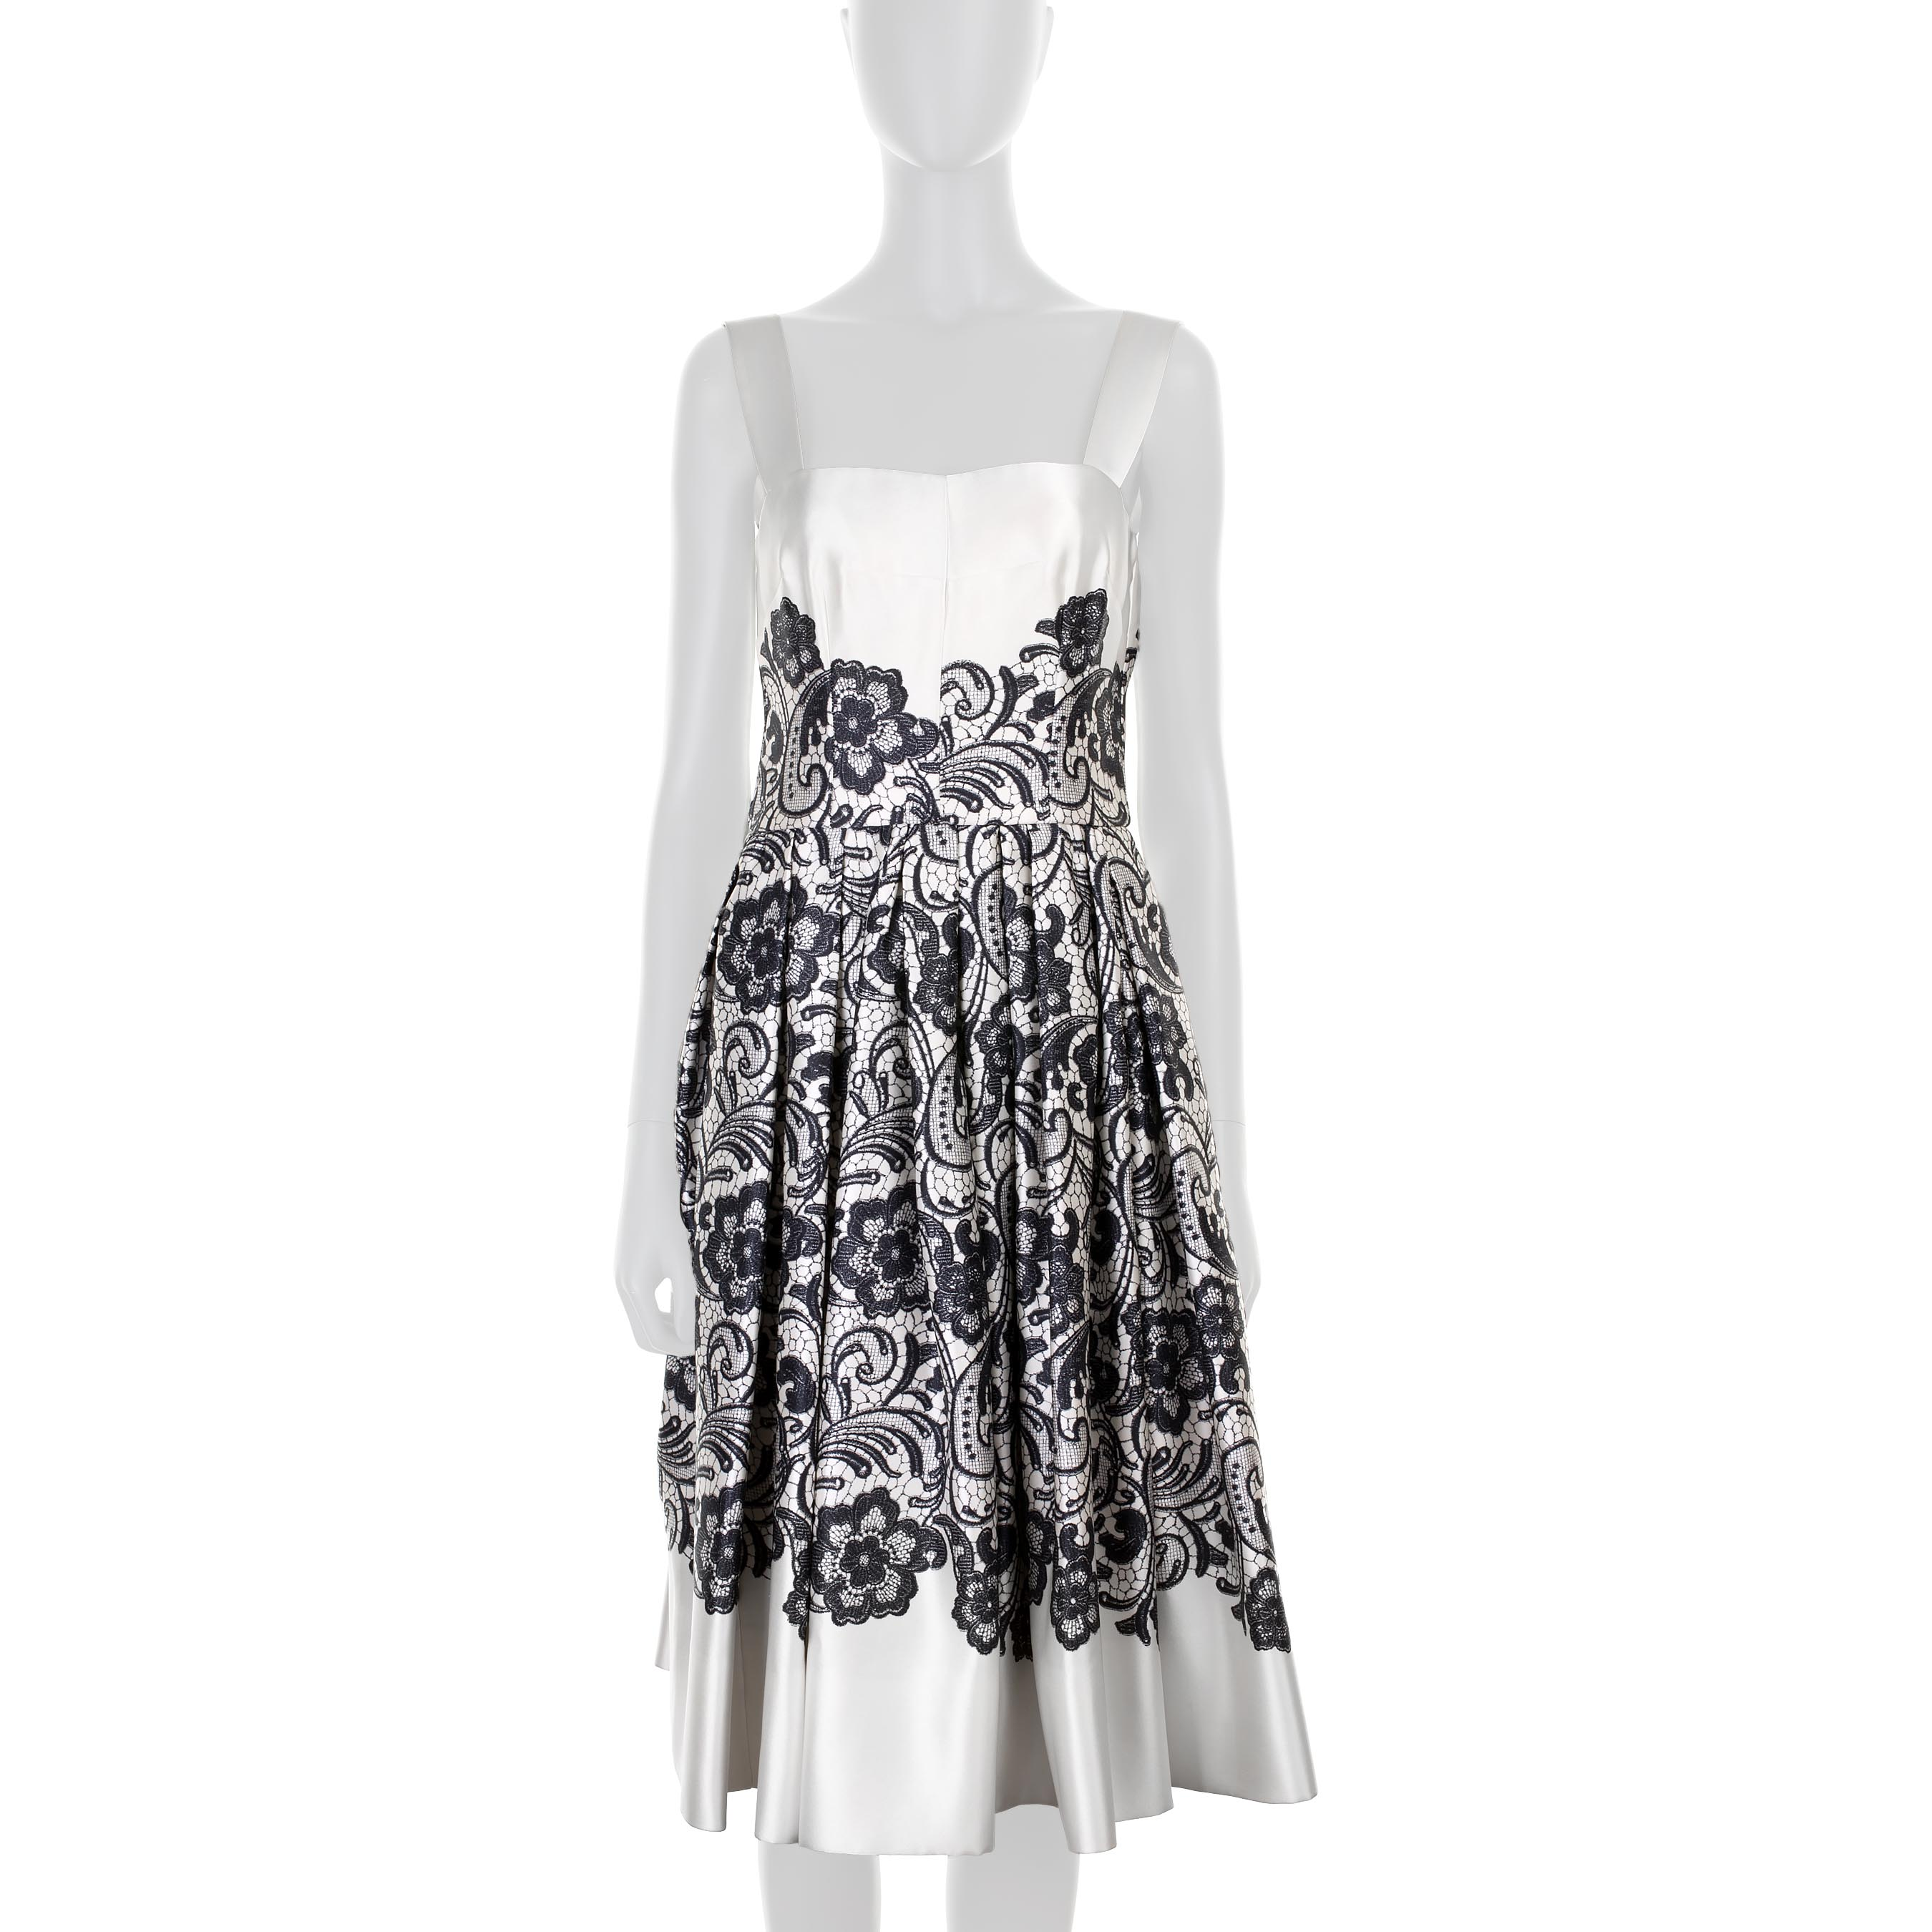 Lace Printed Silk Cocktail Dress by Dolce e Gabbana - Le Dressing Monaco